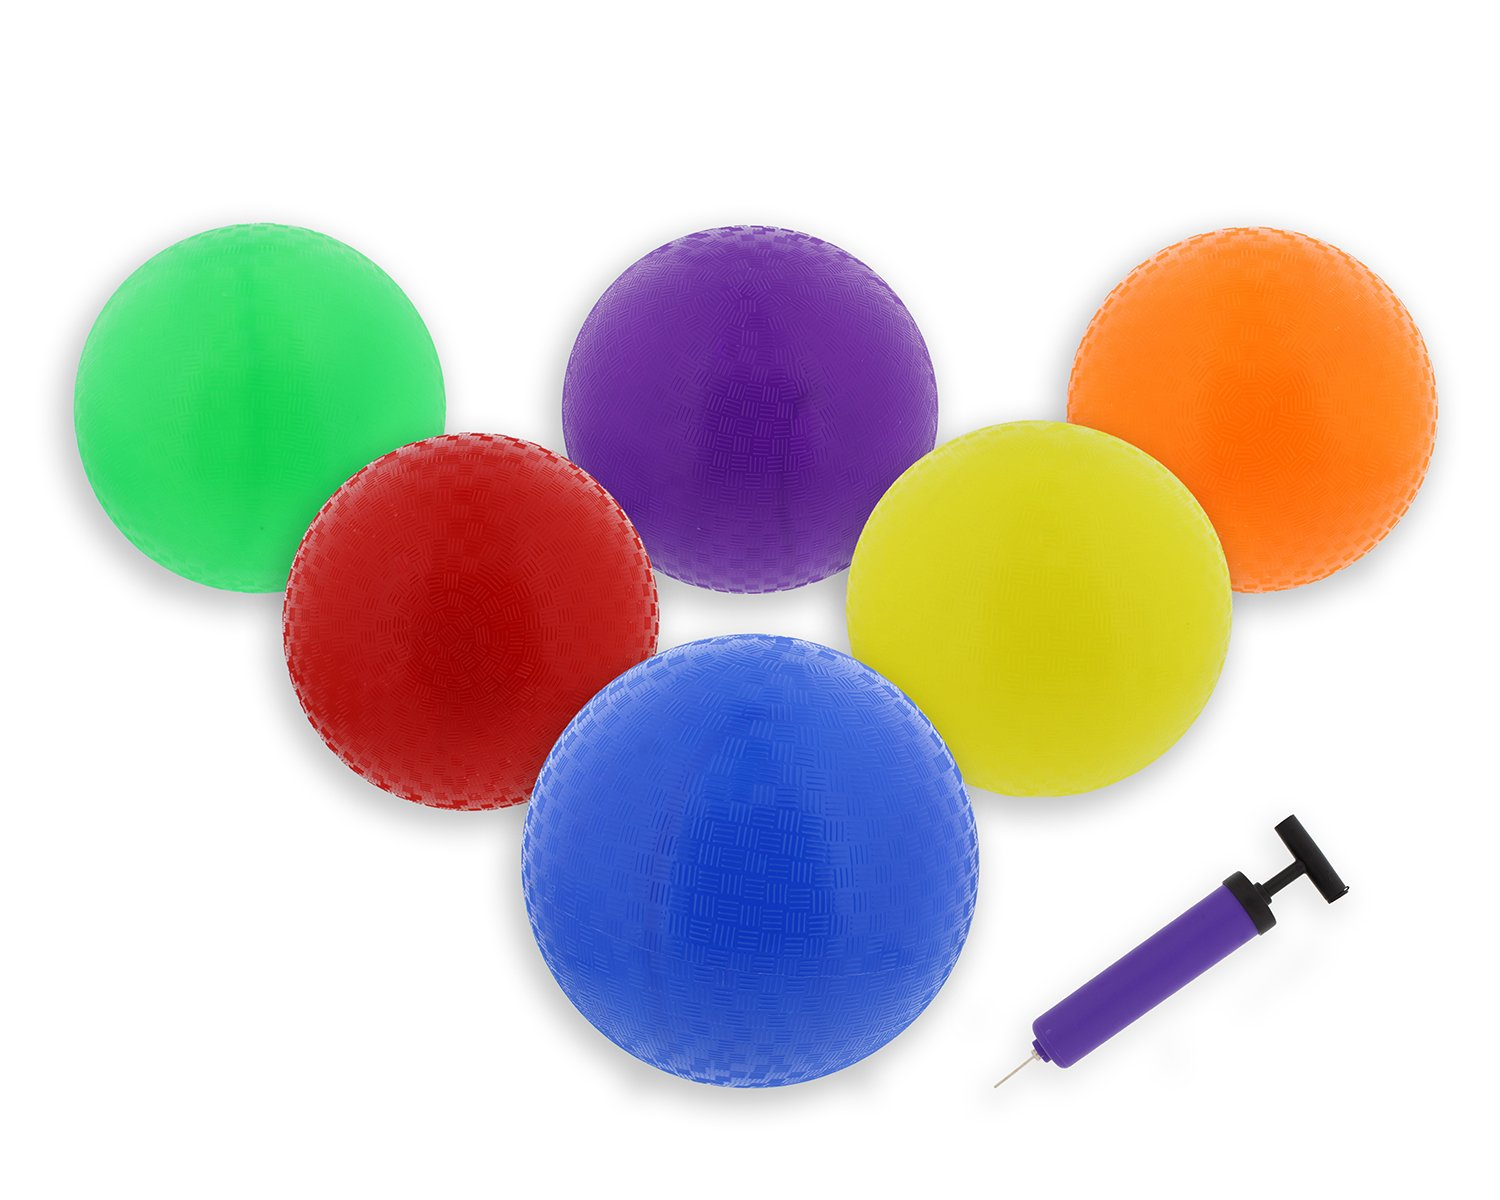 "Get Out! Colorful 8.5"" Inch Play Ball 6-Pack Set & Inflator, Latex Free Kids Small Rubber Playground Four Square Balls & Hand Pump"